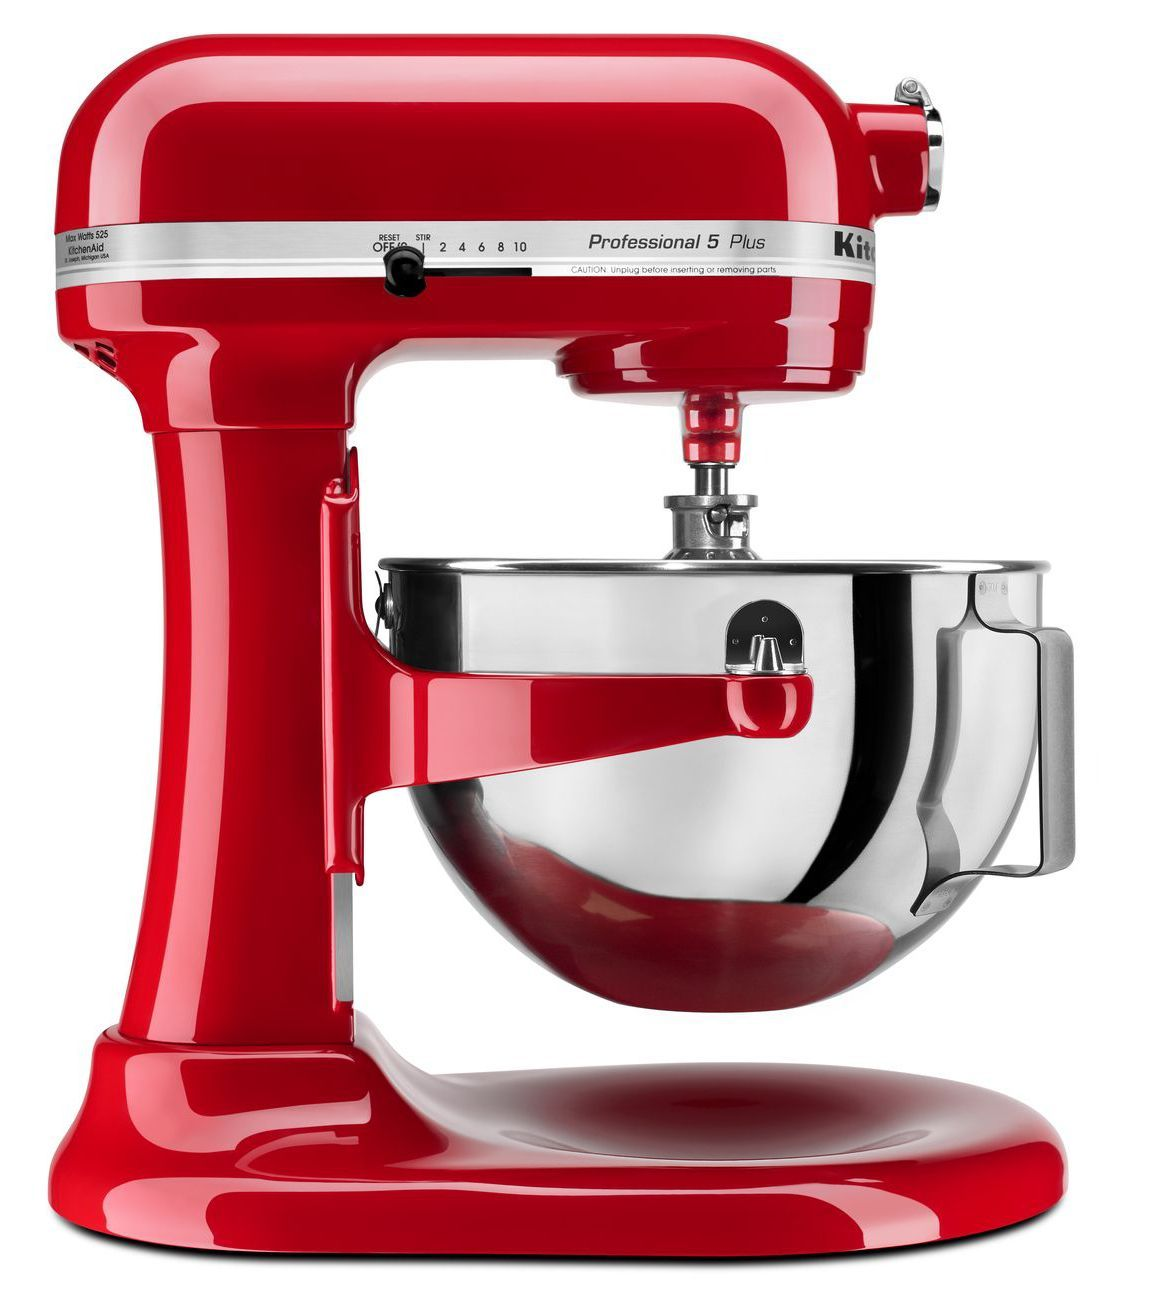 Details About Kitchenaid 174 Professional 5 Plus Series 5